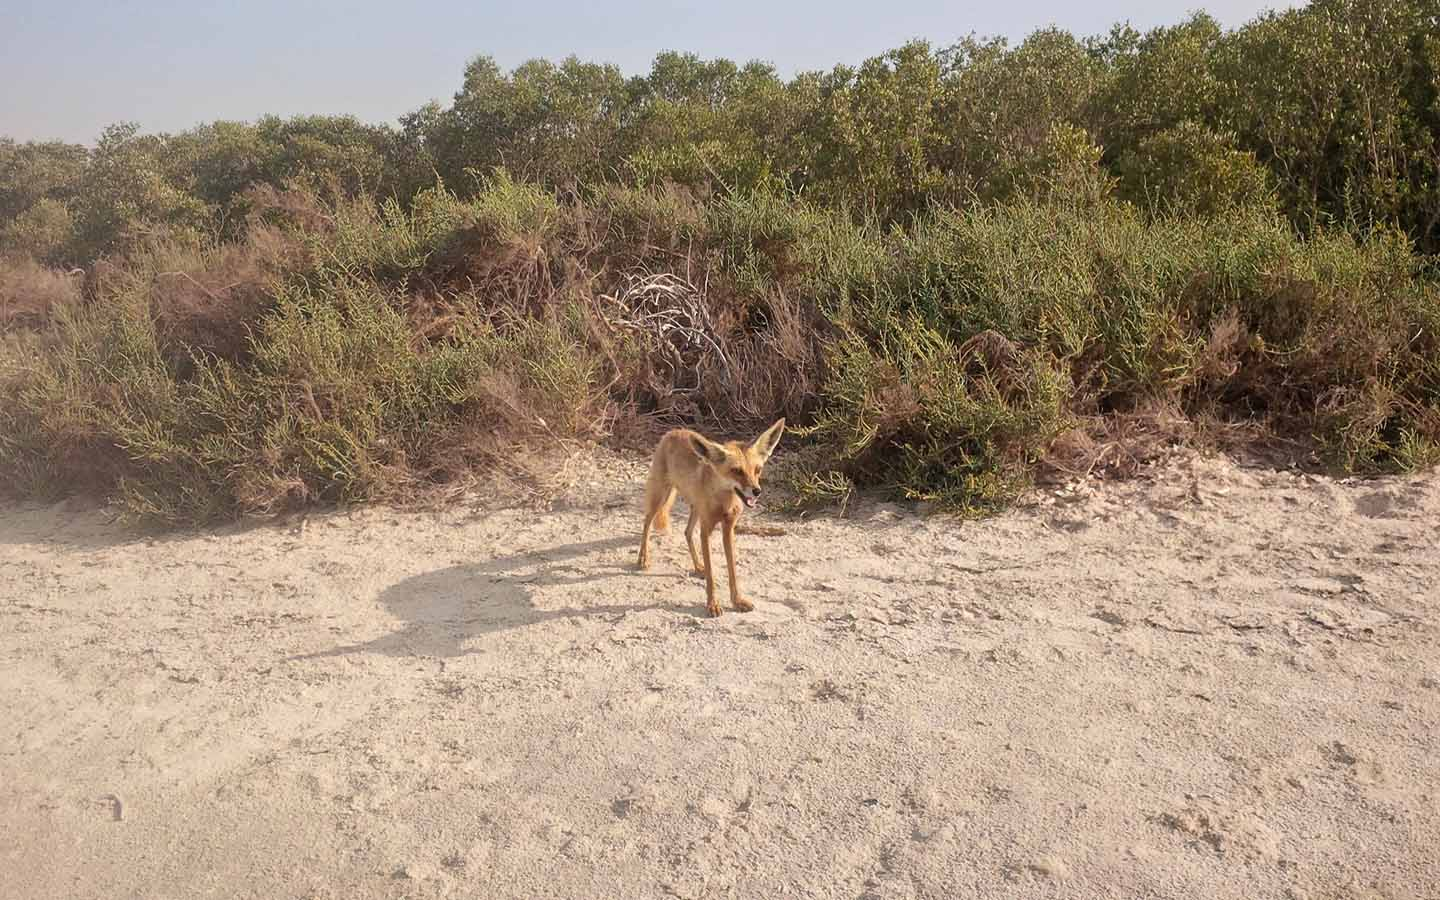 A fox at the Mangrove forest Abu Dhabi